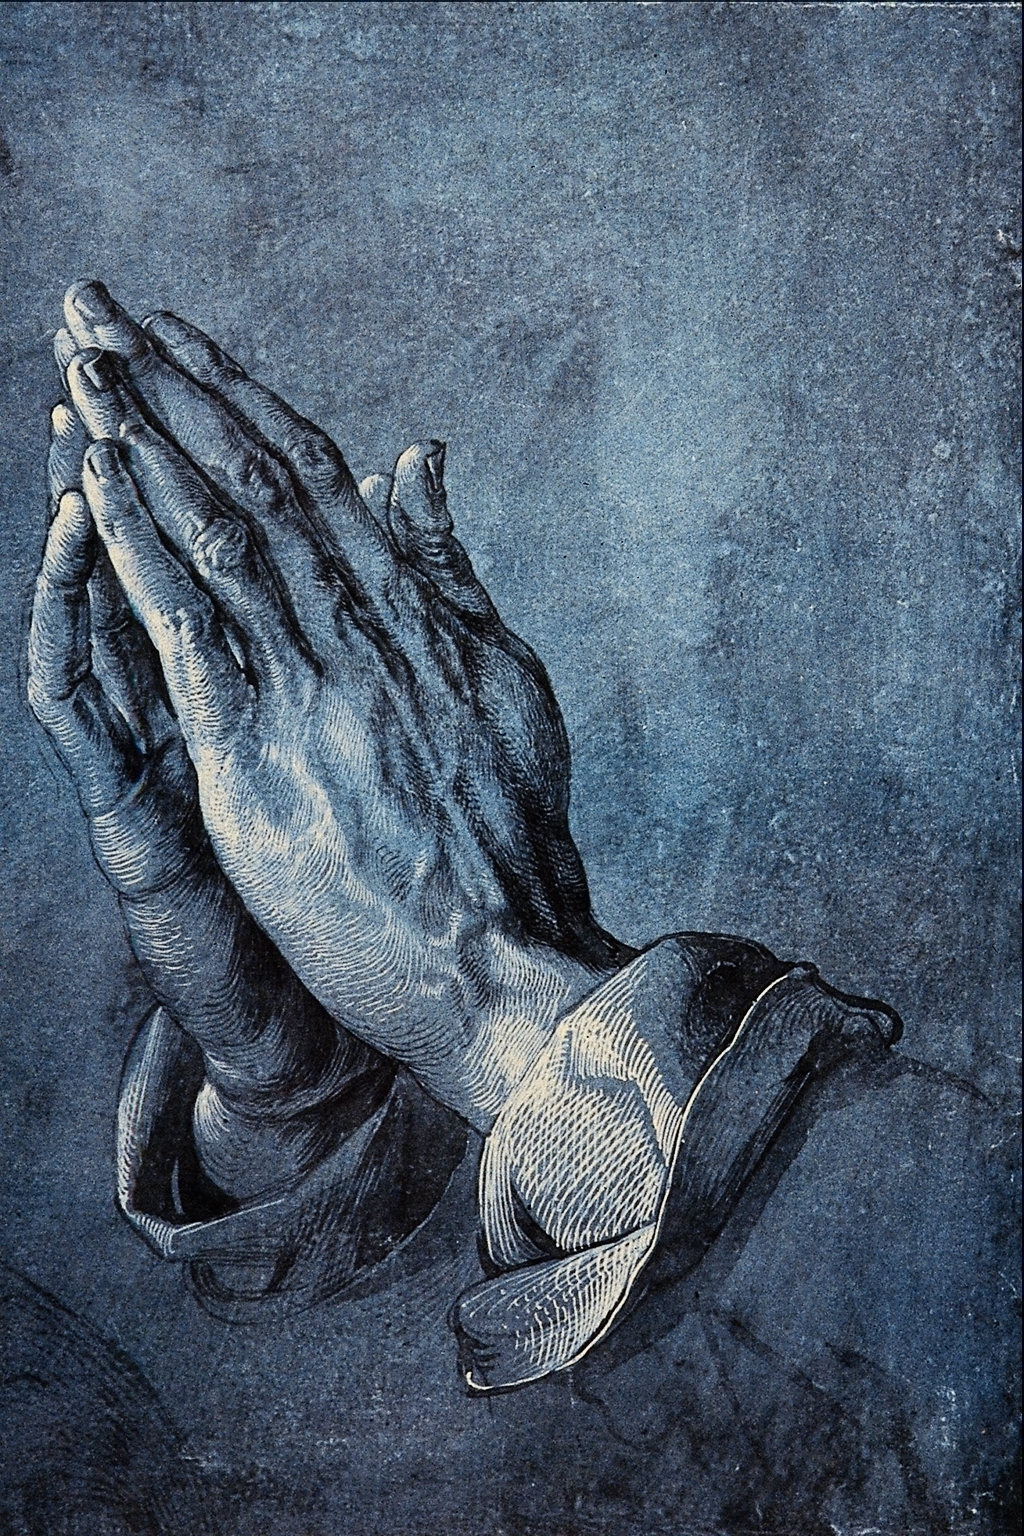 Praying Hands (Dürer); prayers